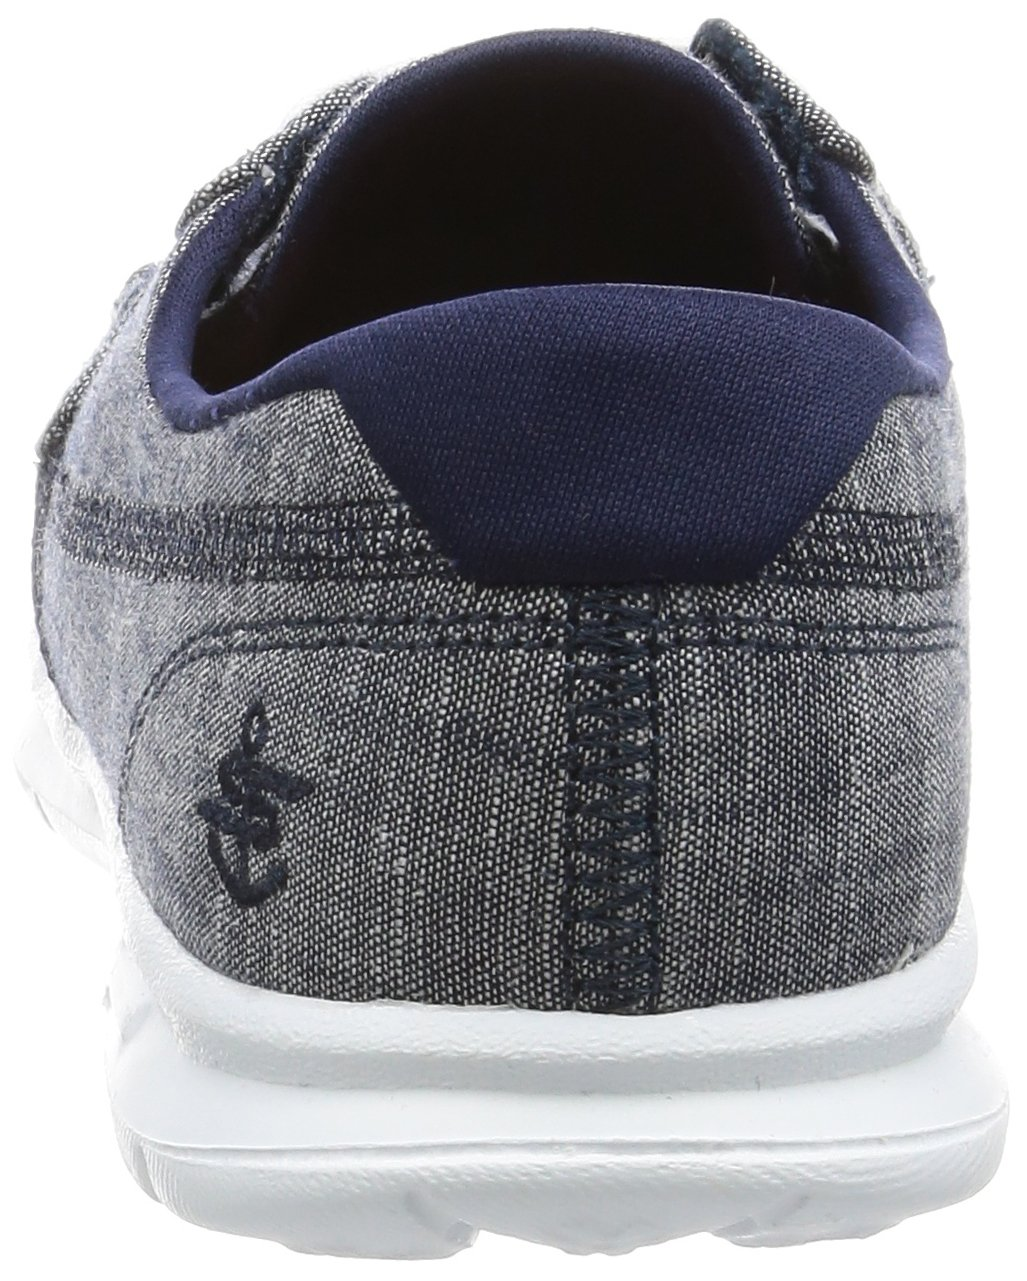 Skechers Damenschuhe/Ladies Go Step Schuhes Jersey Marina Textile Canvas Casual Schuhes Step Navy ca55e1